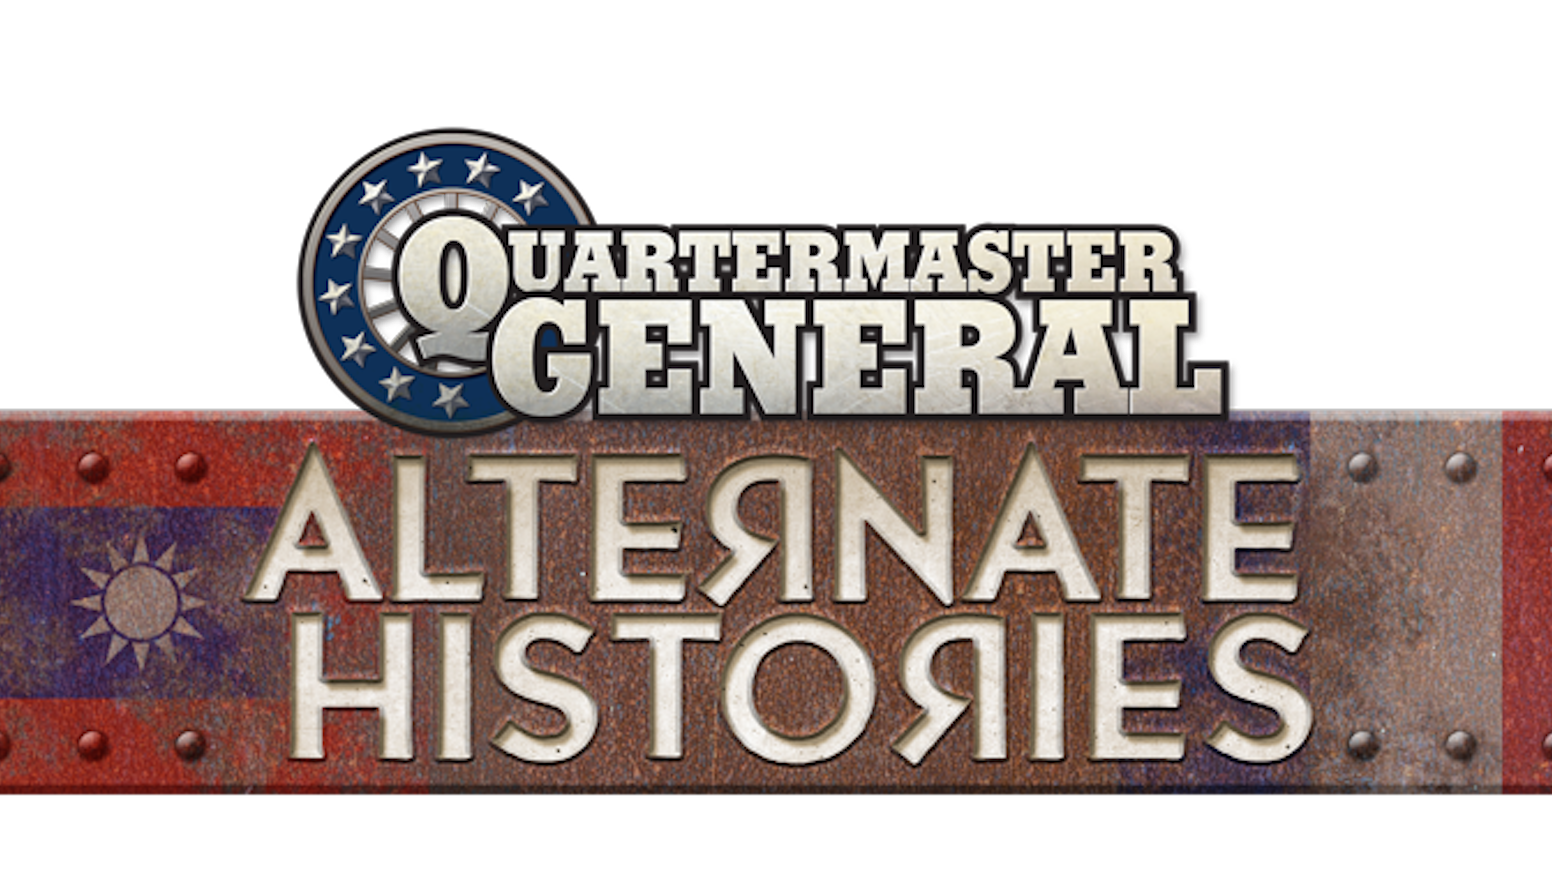 Alternate Histories is the second expansion for Quartermaster General, the critically acclaimed fast-playing World War 2 game.